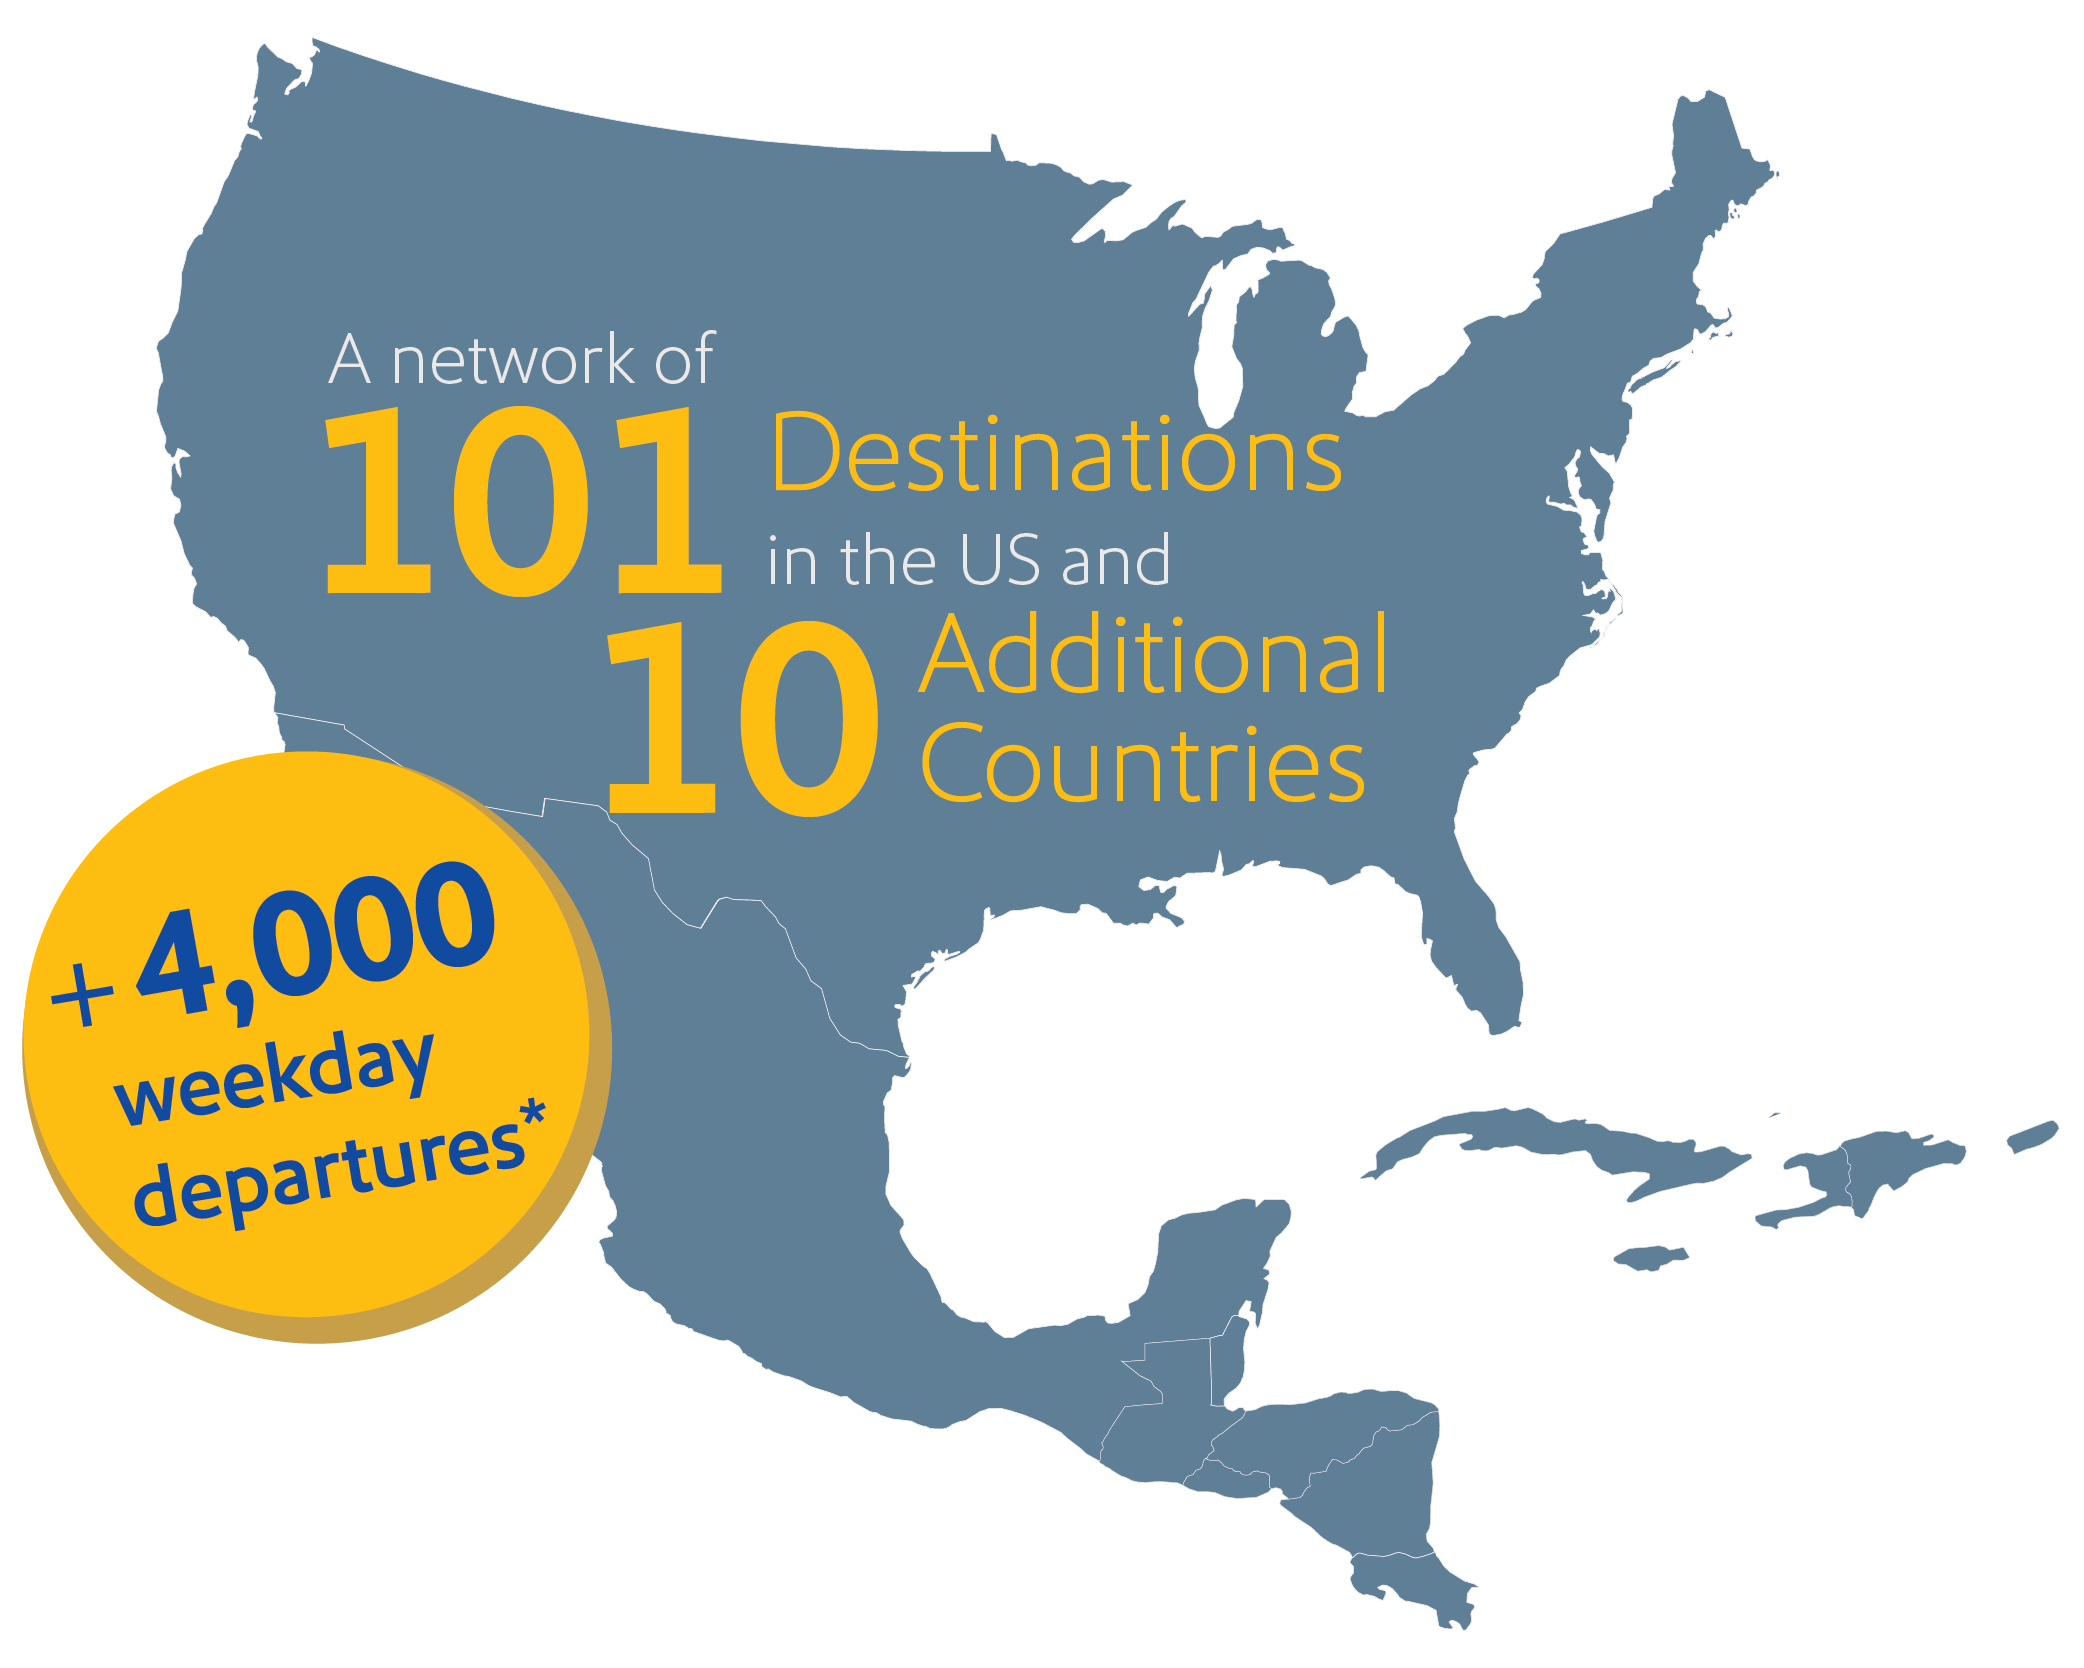 "Image that reads, ""A network of 101 Destinations in the US and 10 Additional Countries + 4,000 weekday departures*"""